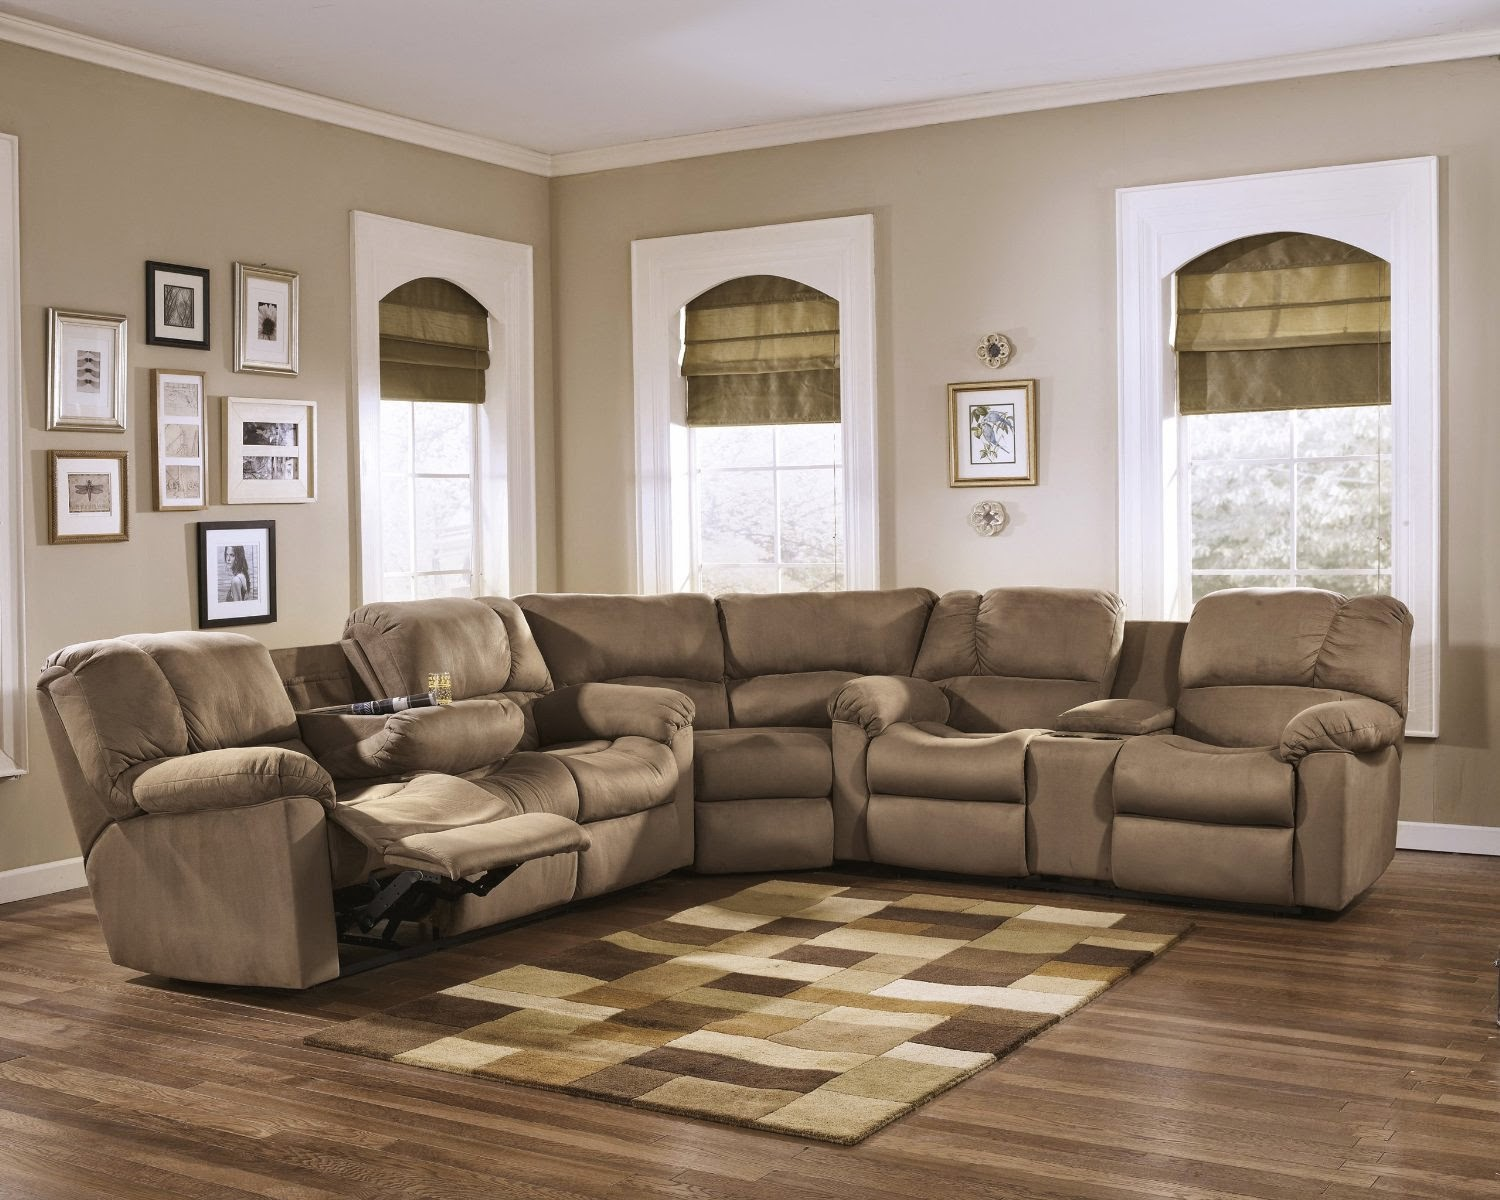 Contemporary Fabric Recliner Sofa Sets